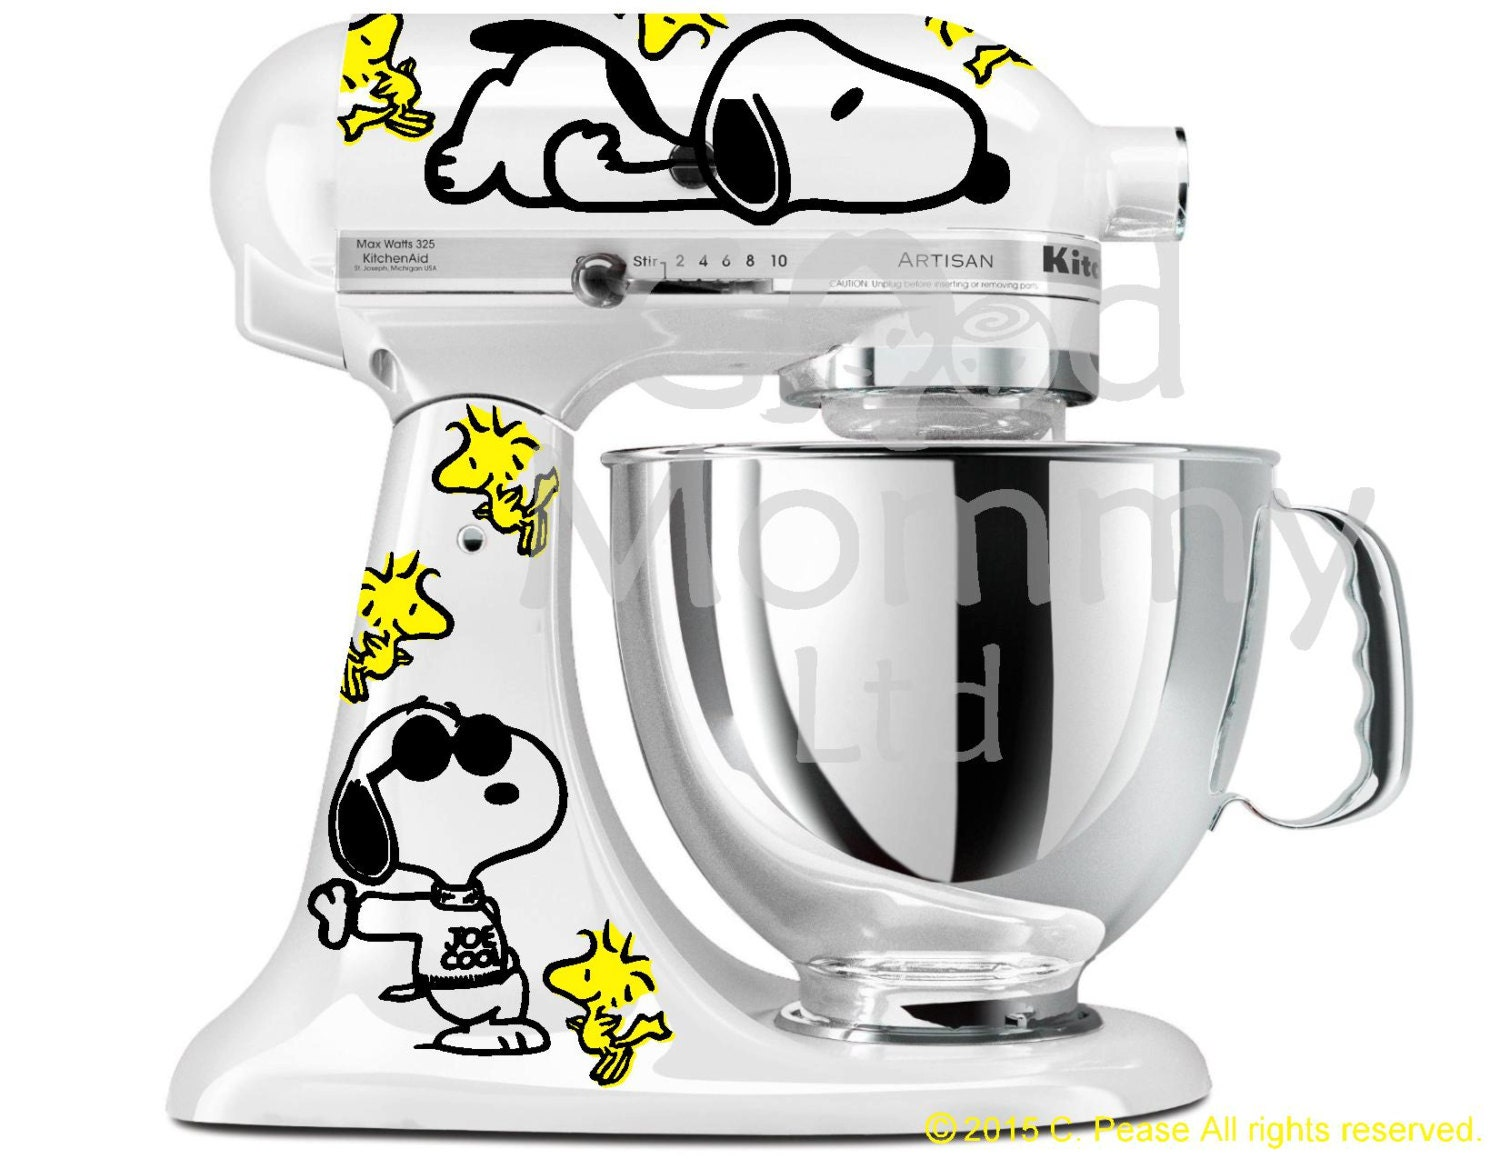 peanuts inspired stand mixer decal kit for your kitchenaid etsy rh etsy com